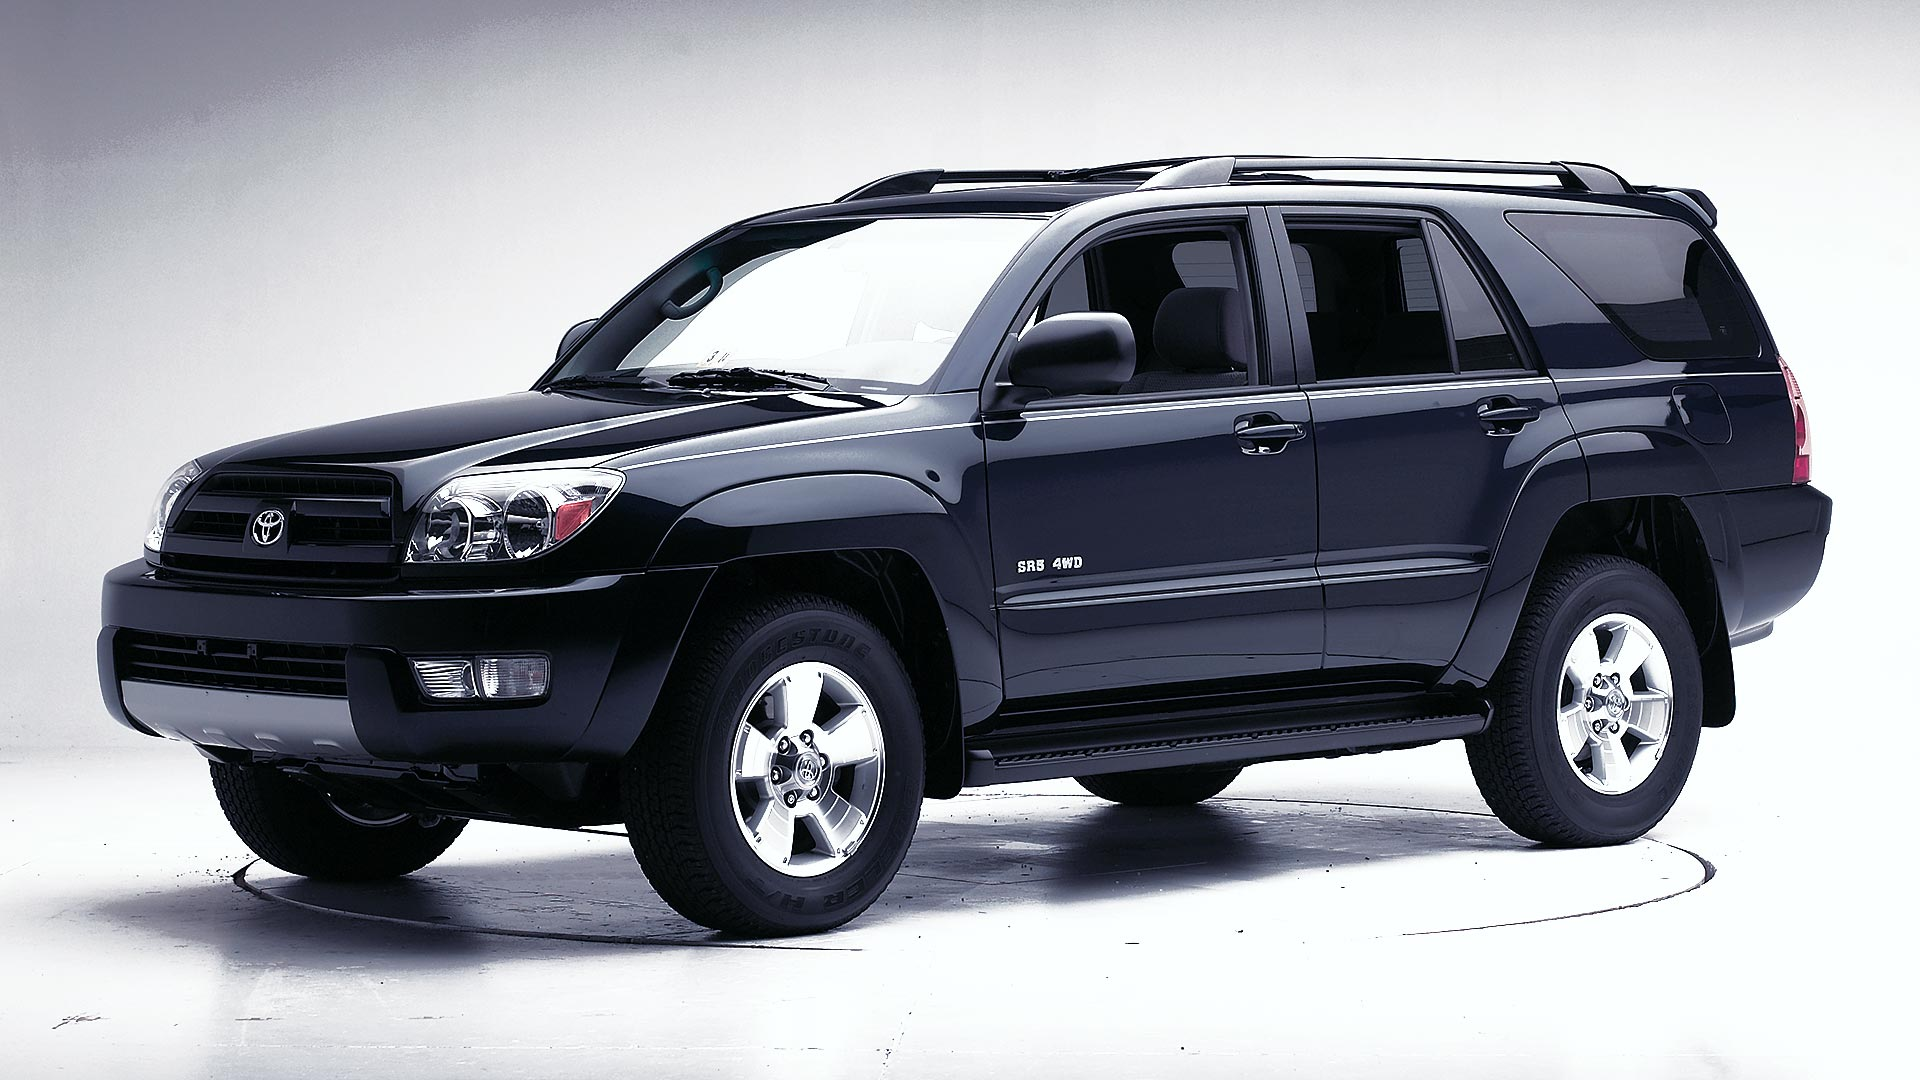 2004 Toyota 4Runner 4-door SUV